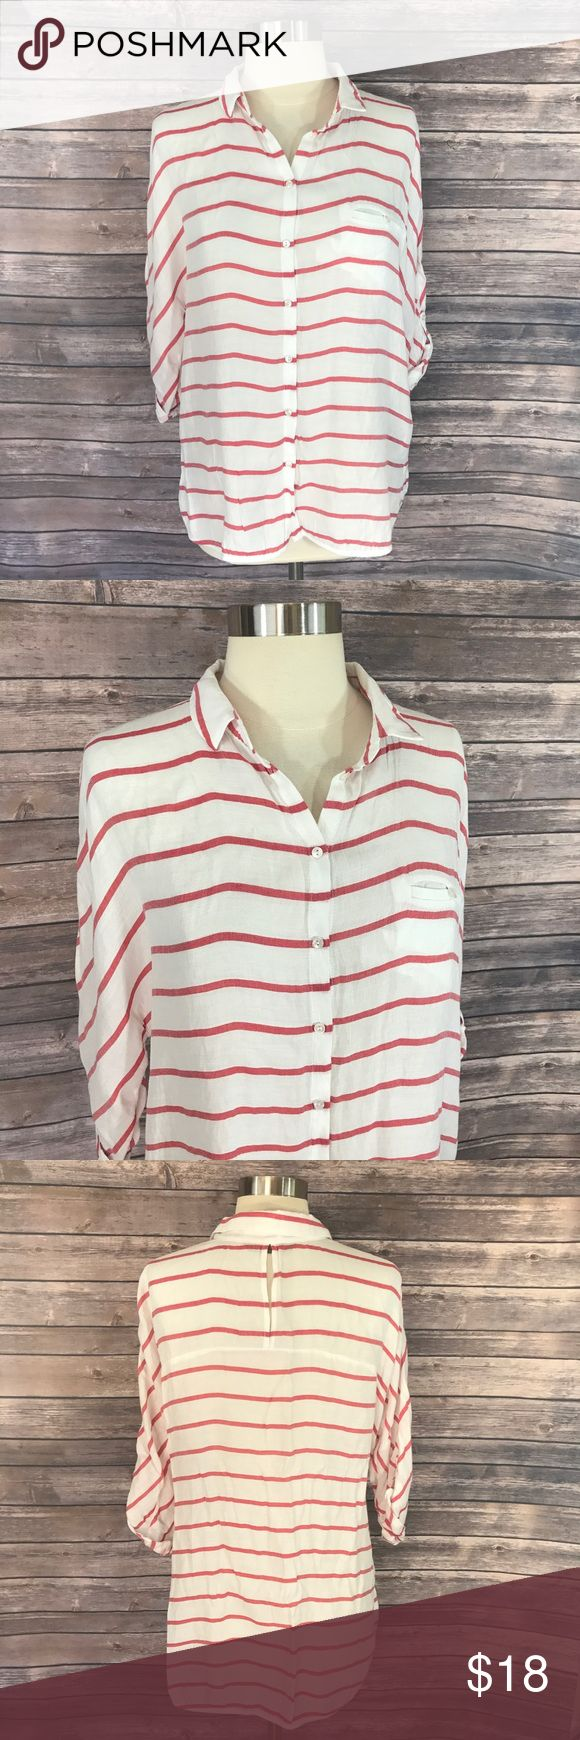 Zara Womens Top Size Medium Button Down Red White Zara Womens Top Size Medium Button Down Red White Striped Shirt Loose Fit. Measurements: (in inches) Underarm to underarm: 21 Length: 30  Good, gently used condition Zara Tops Blouses